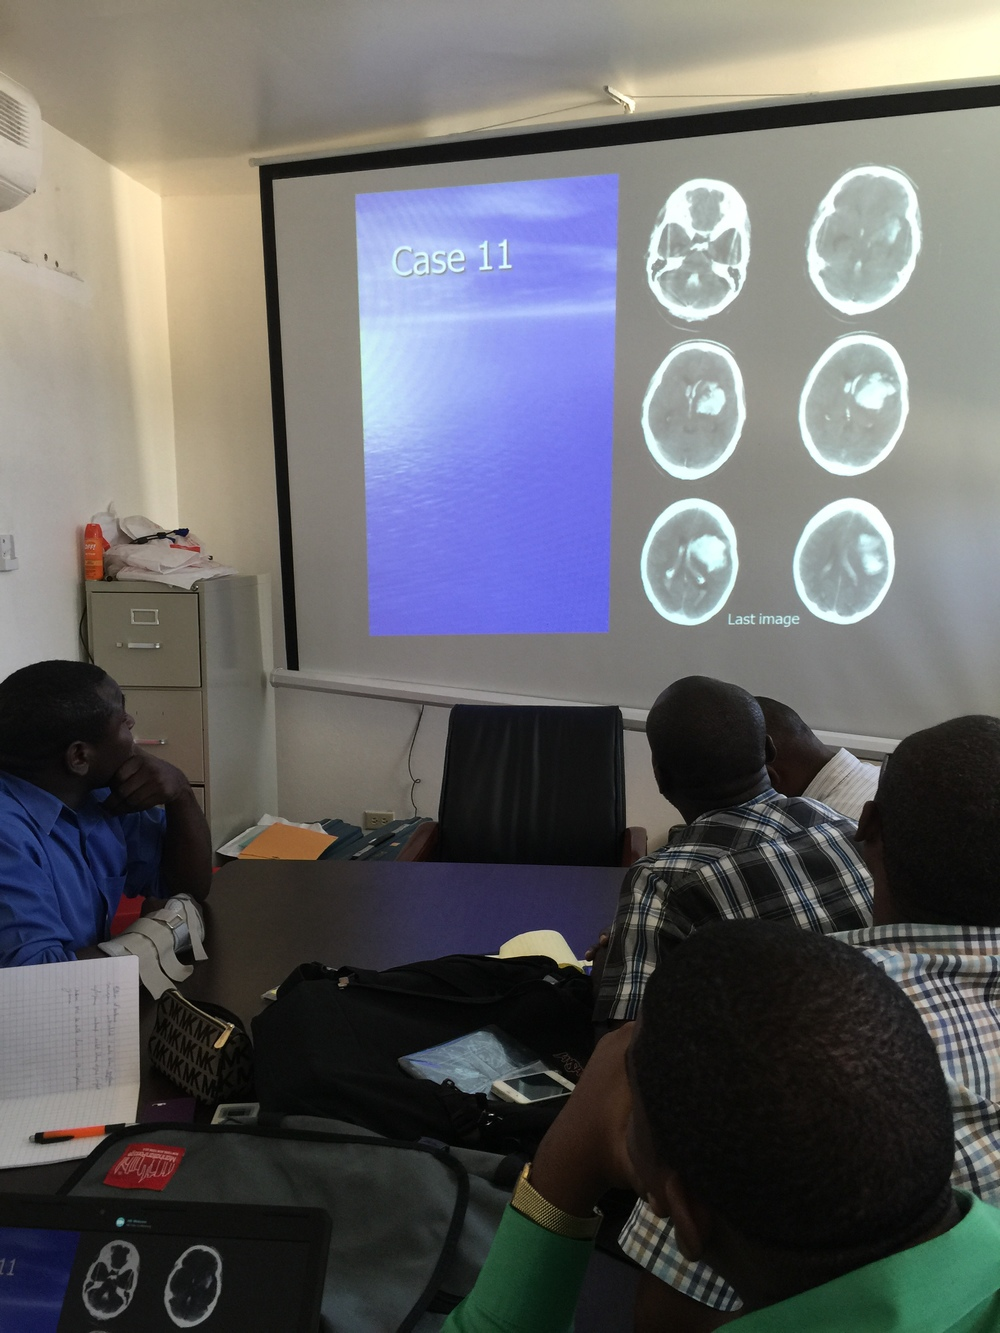 Residents taking cases in Neuro Conference